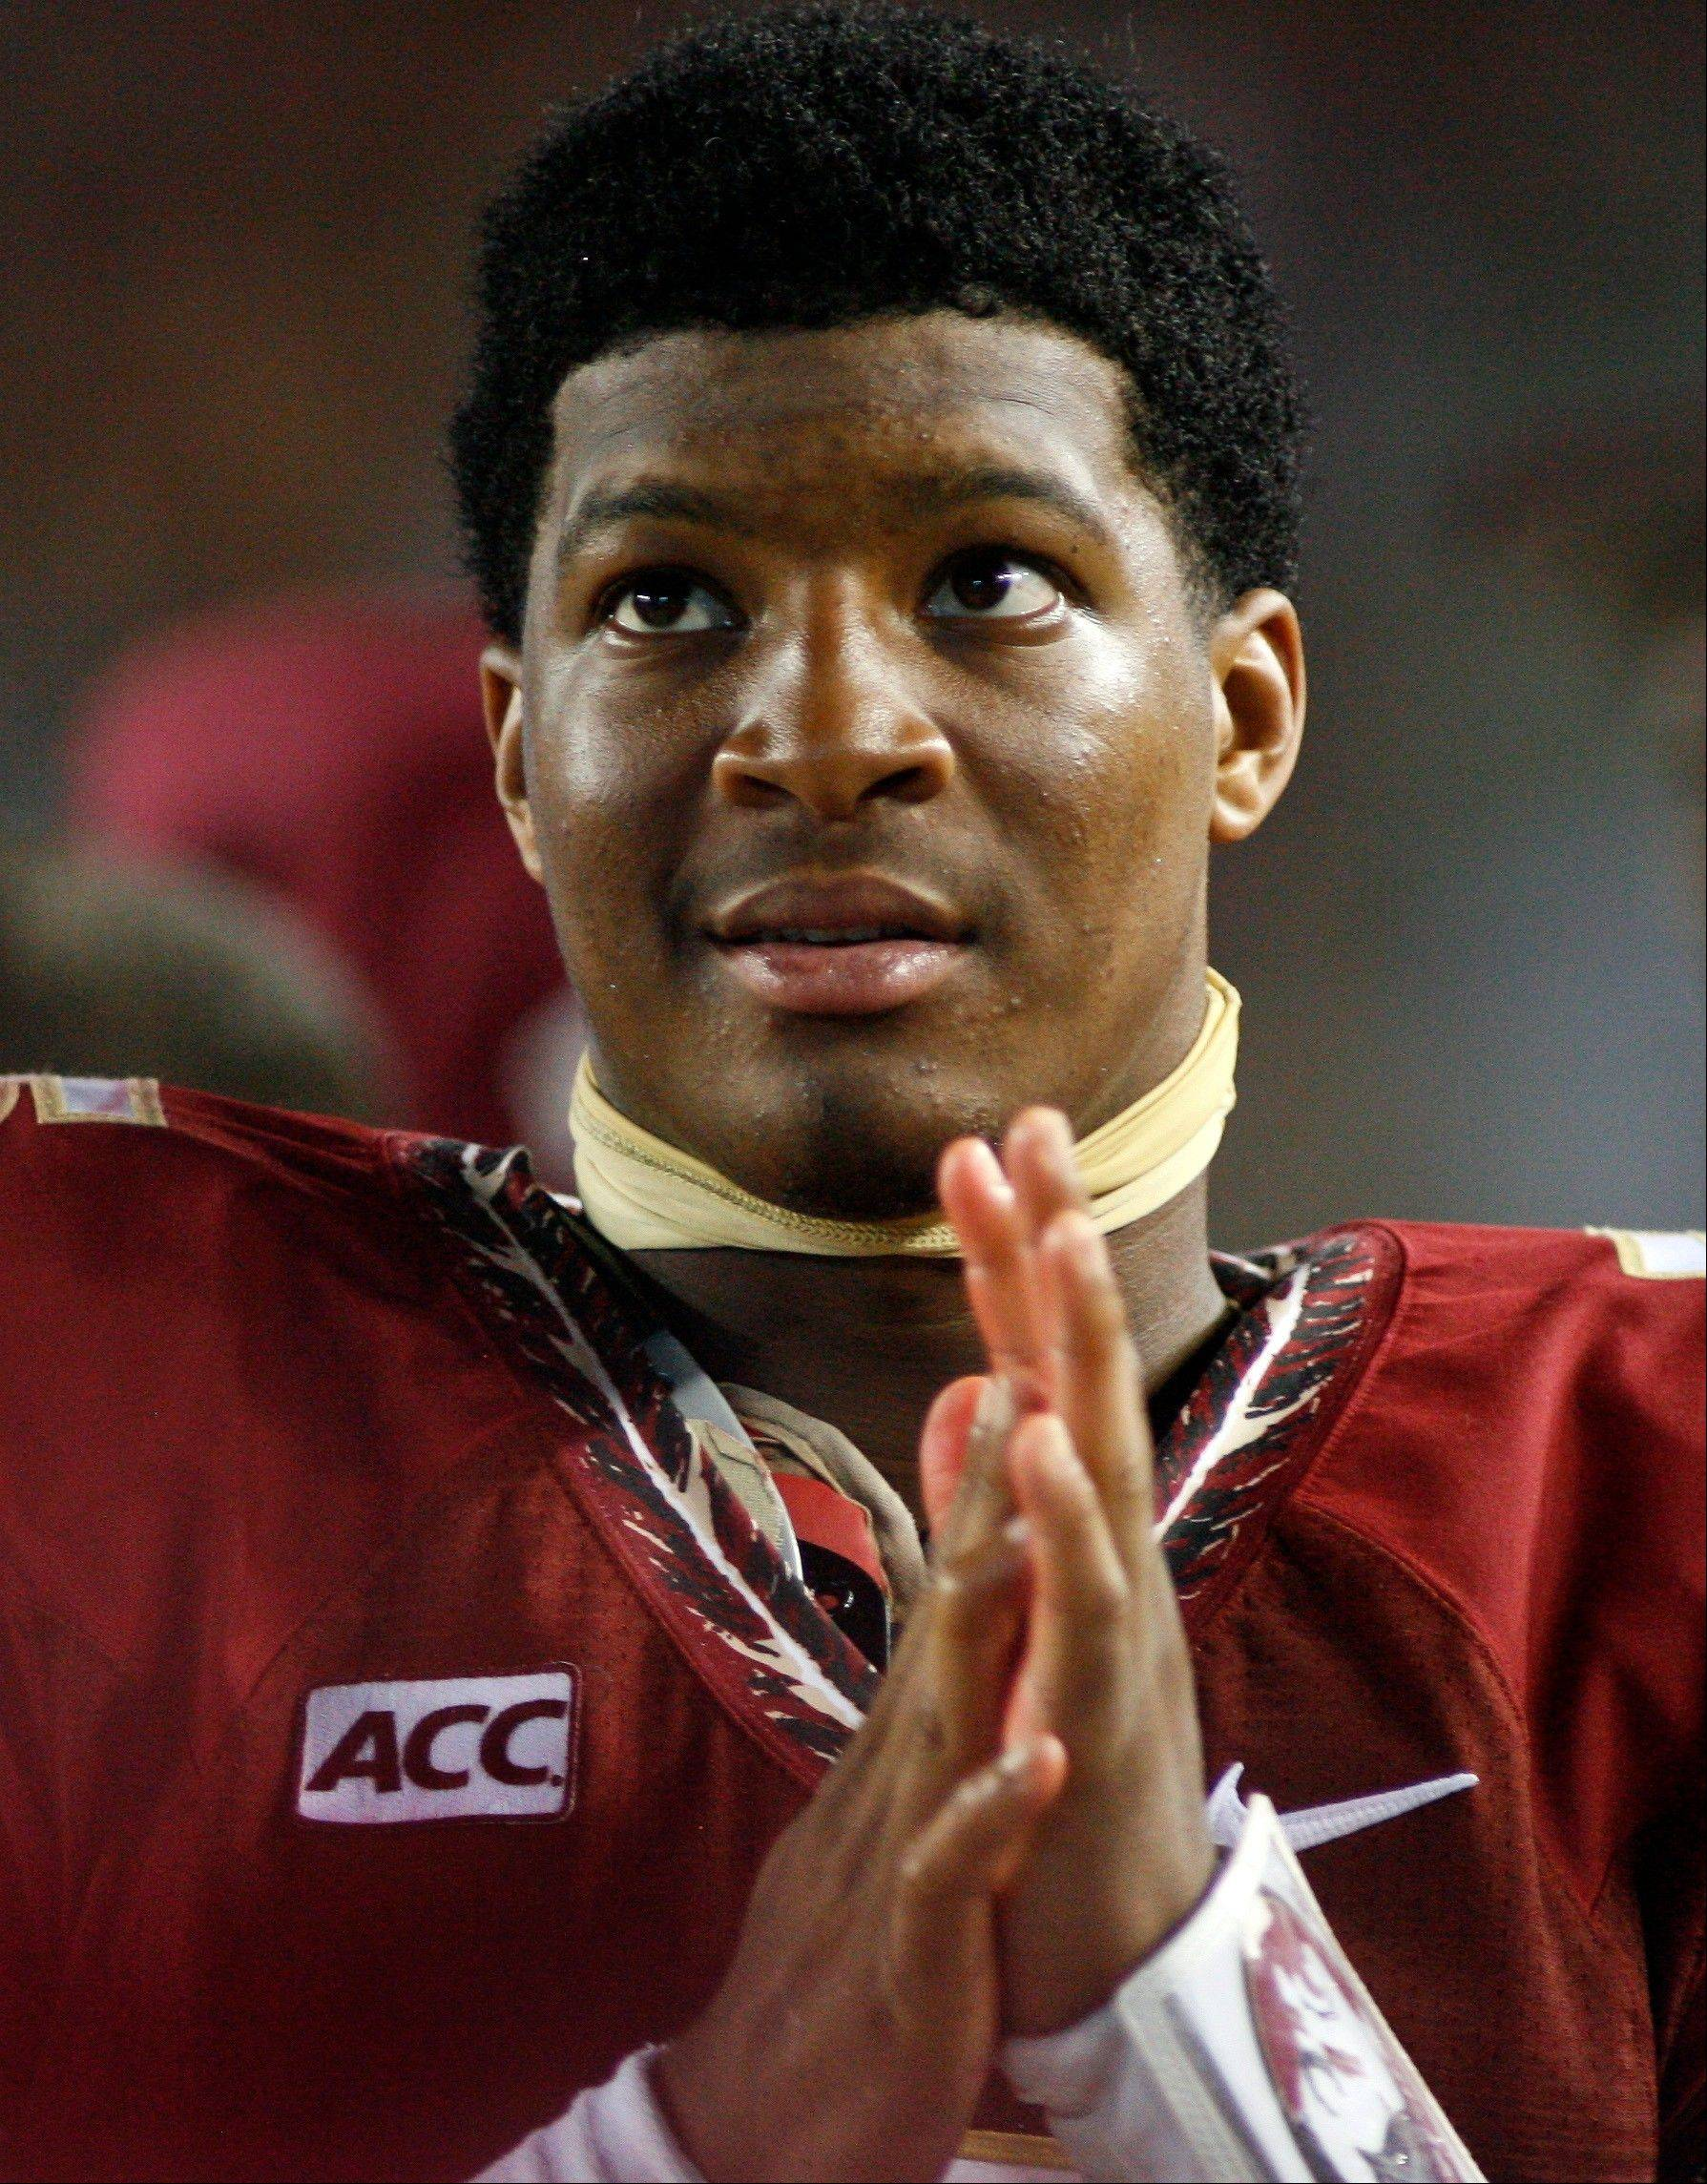 Florida State quarterback Jameis Winston will not face sex assault charges, a prosecutor announced Thursday.